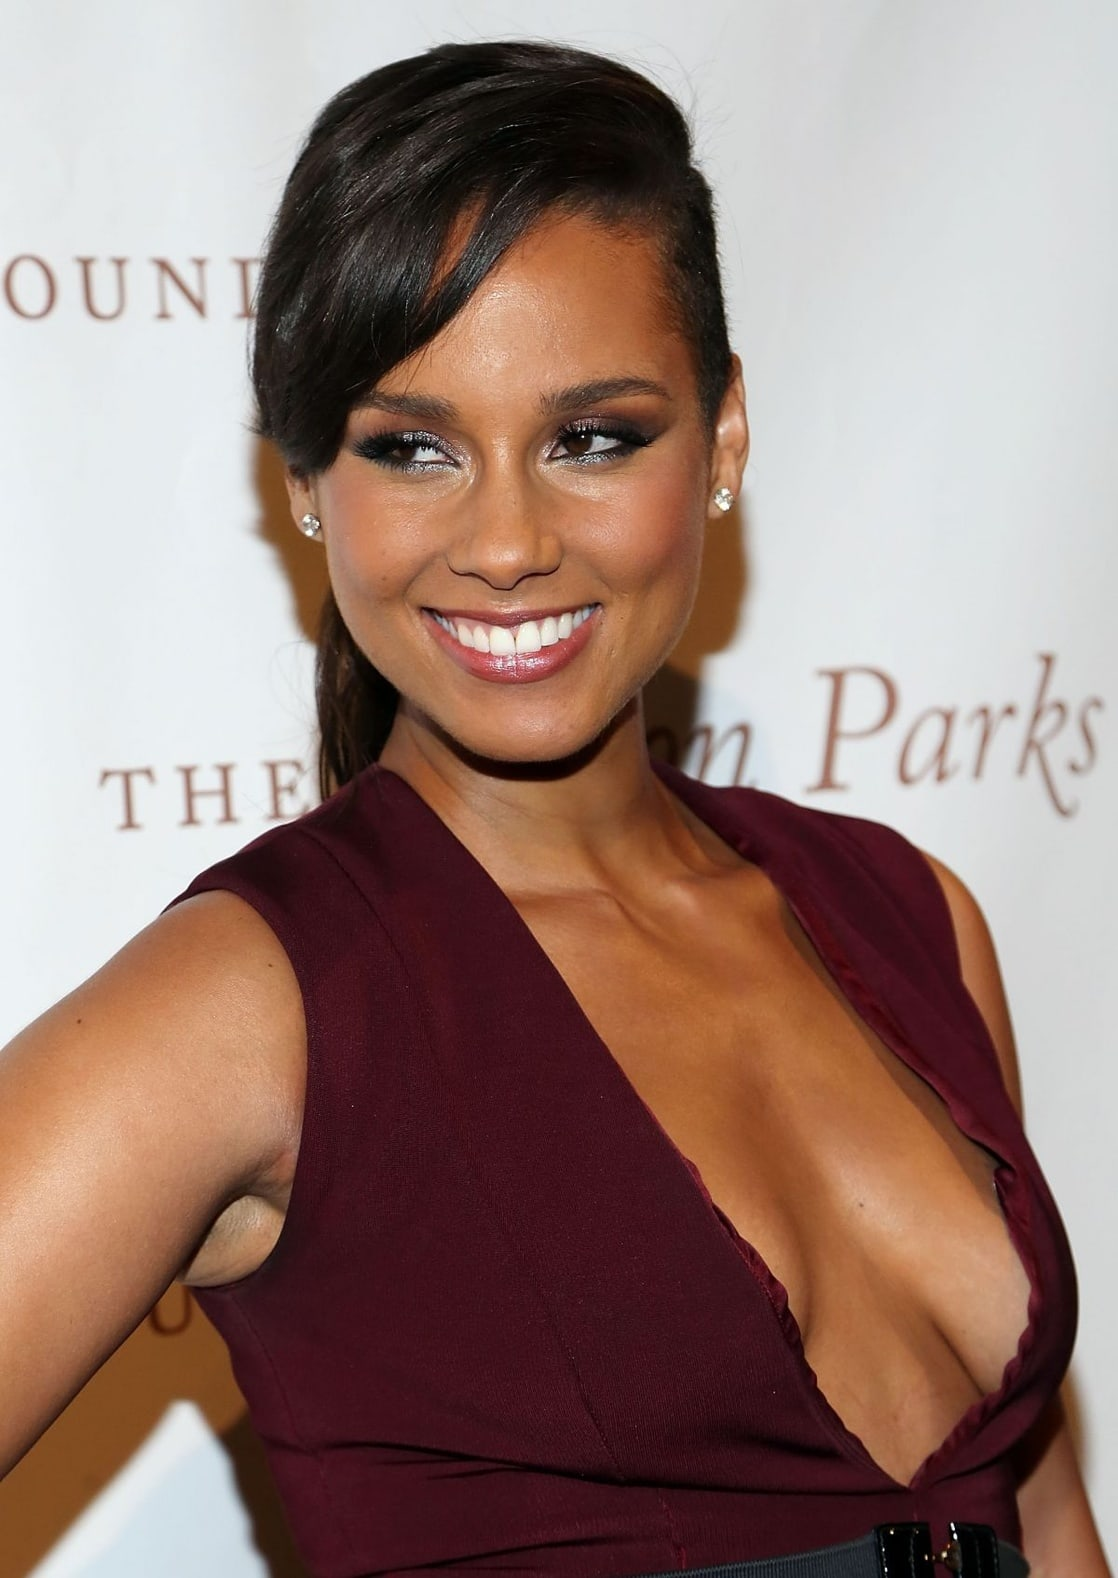 Cleavage Alicia Keys nude photos 2019